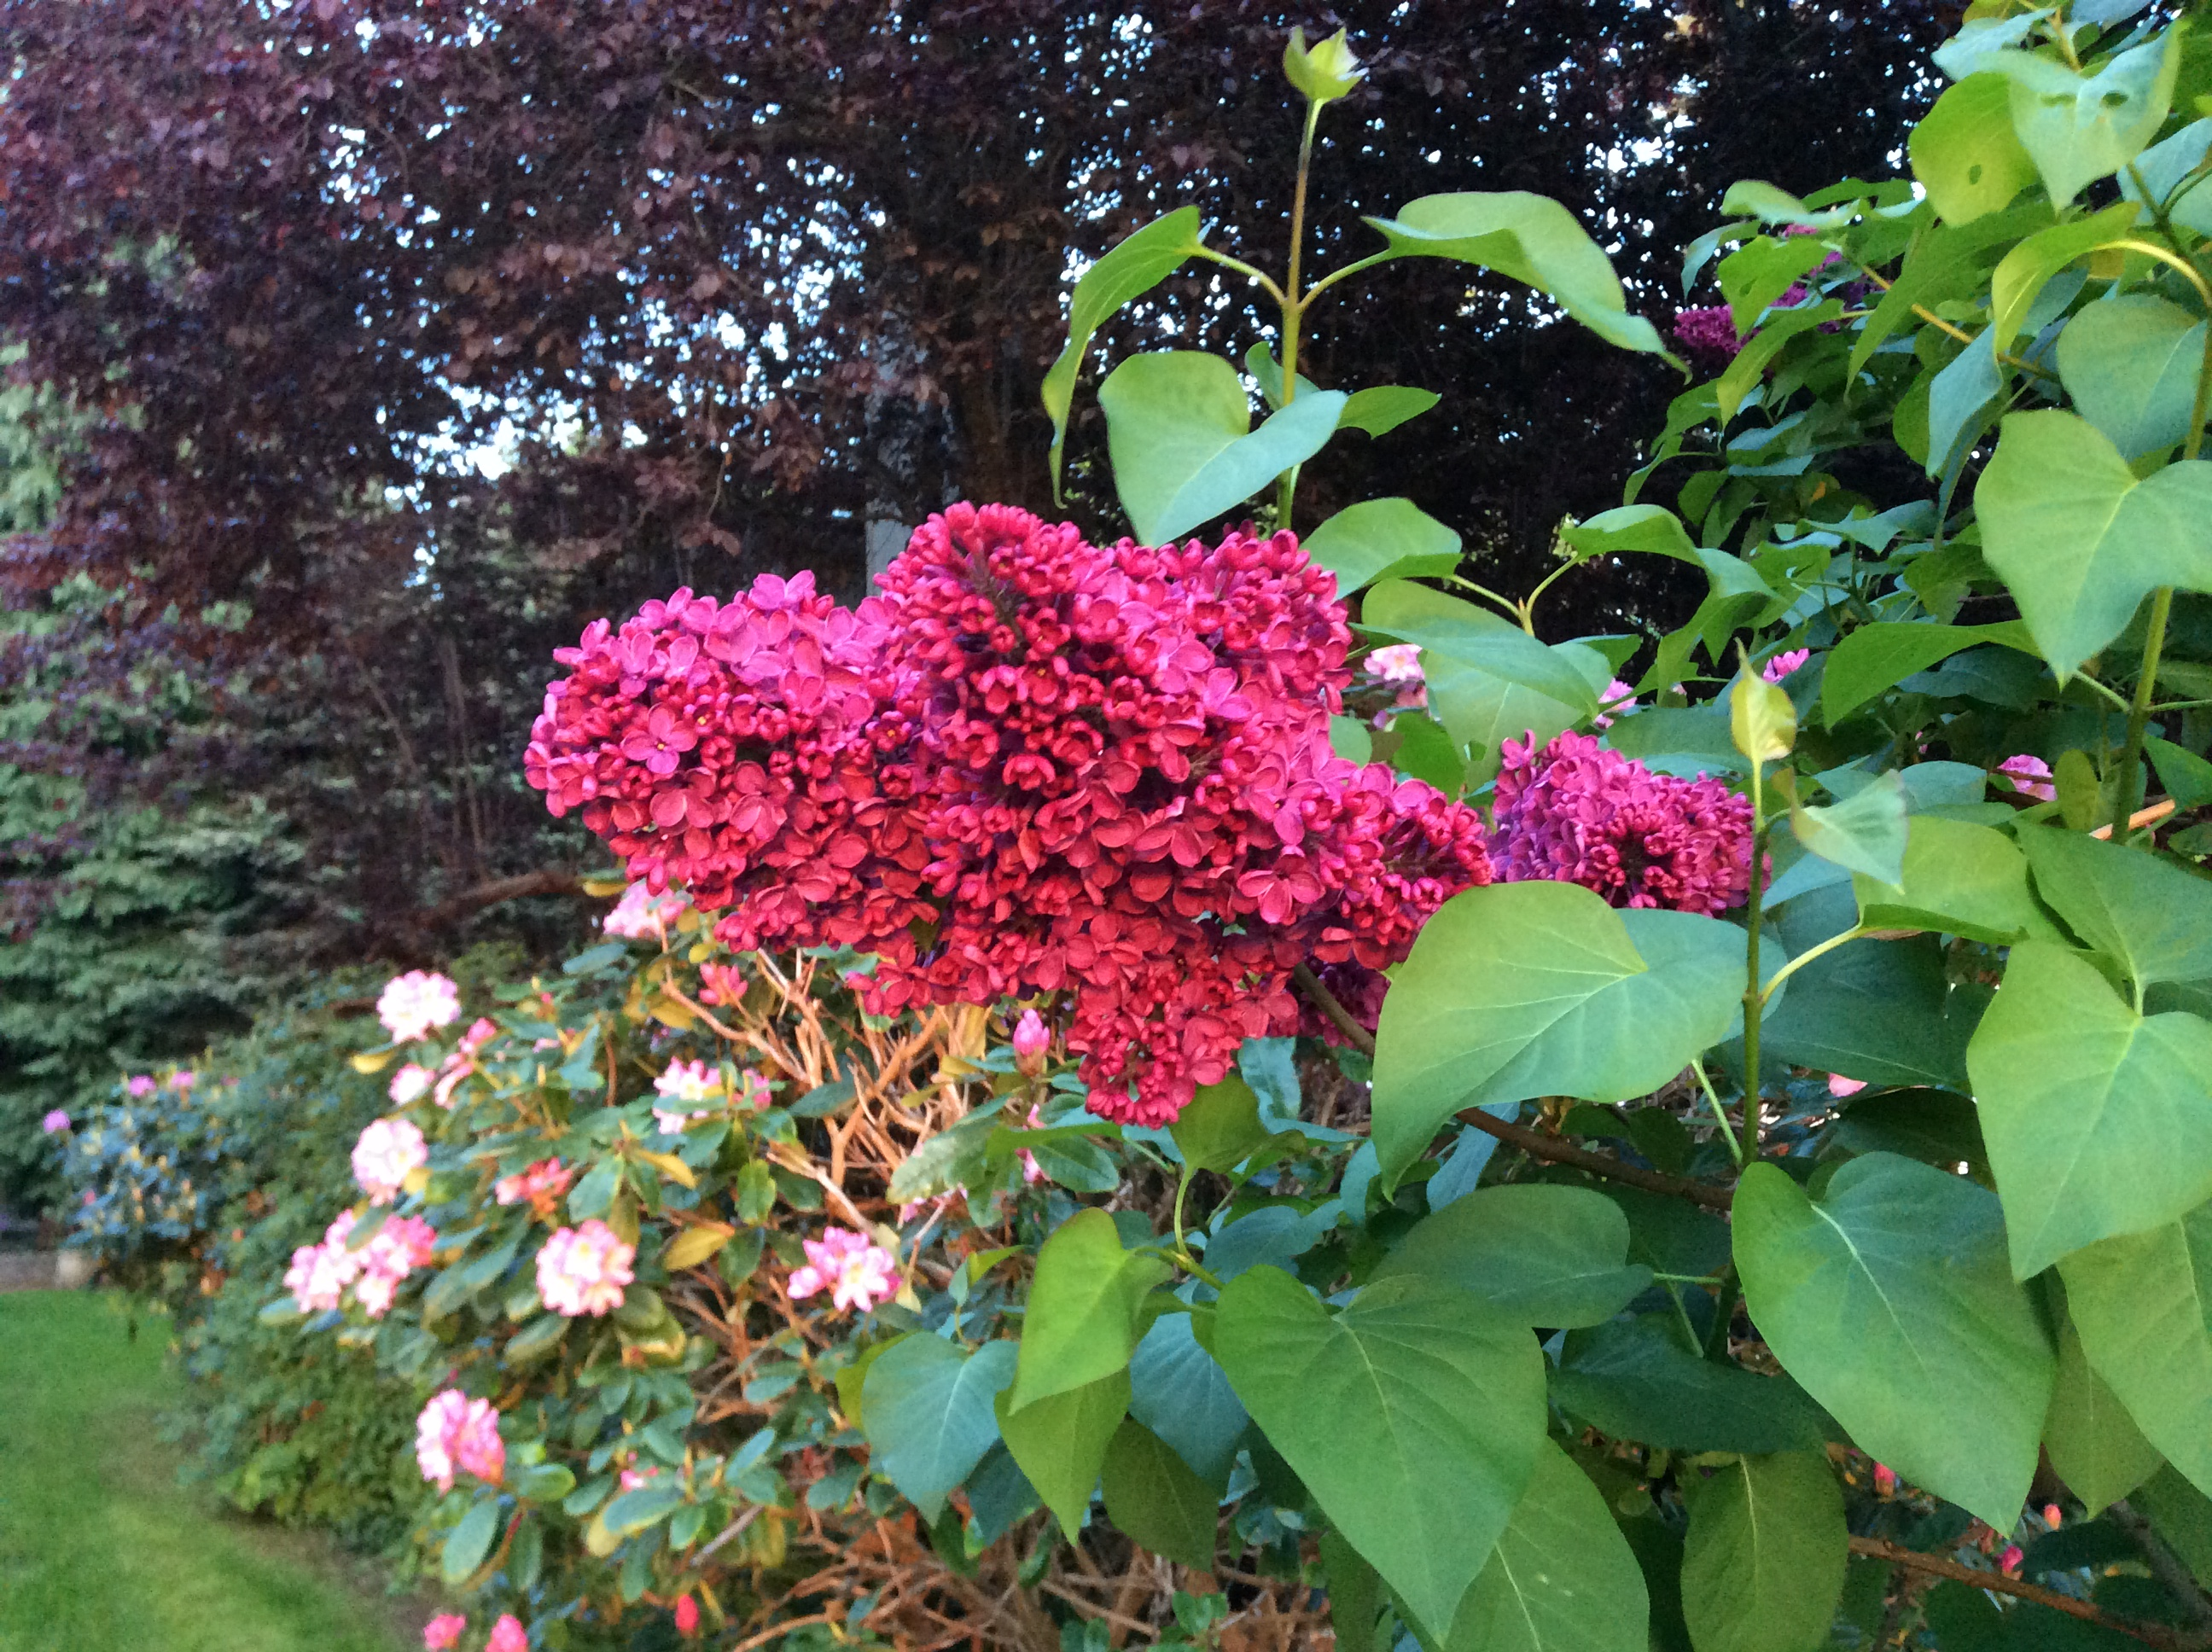 Lilac blooming in front yard Lummi Island Beach Haven May 2014. By David Bailey